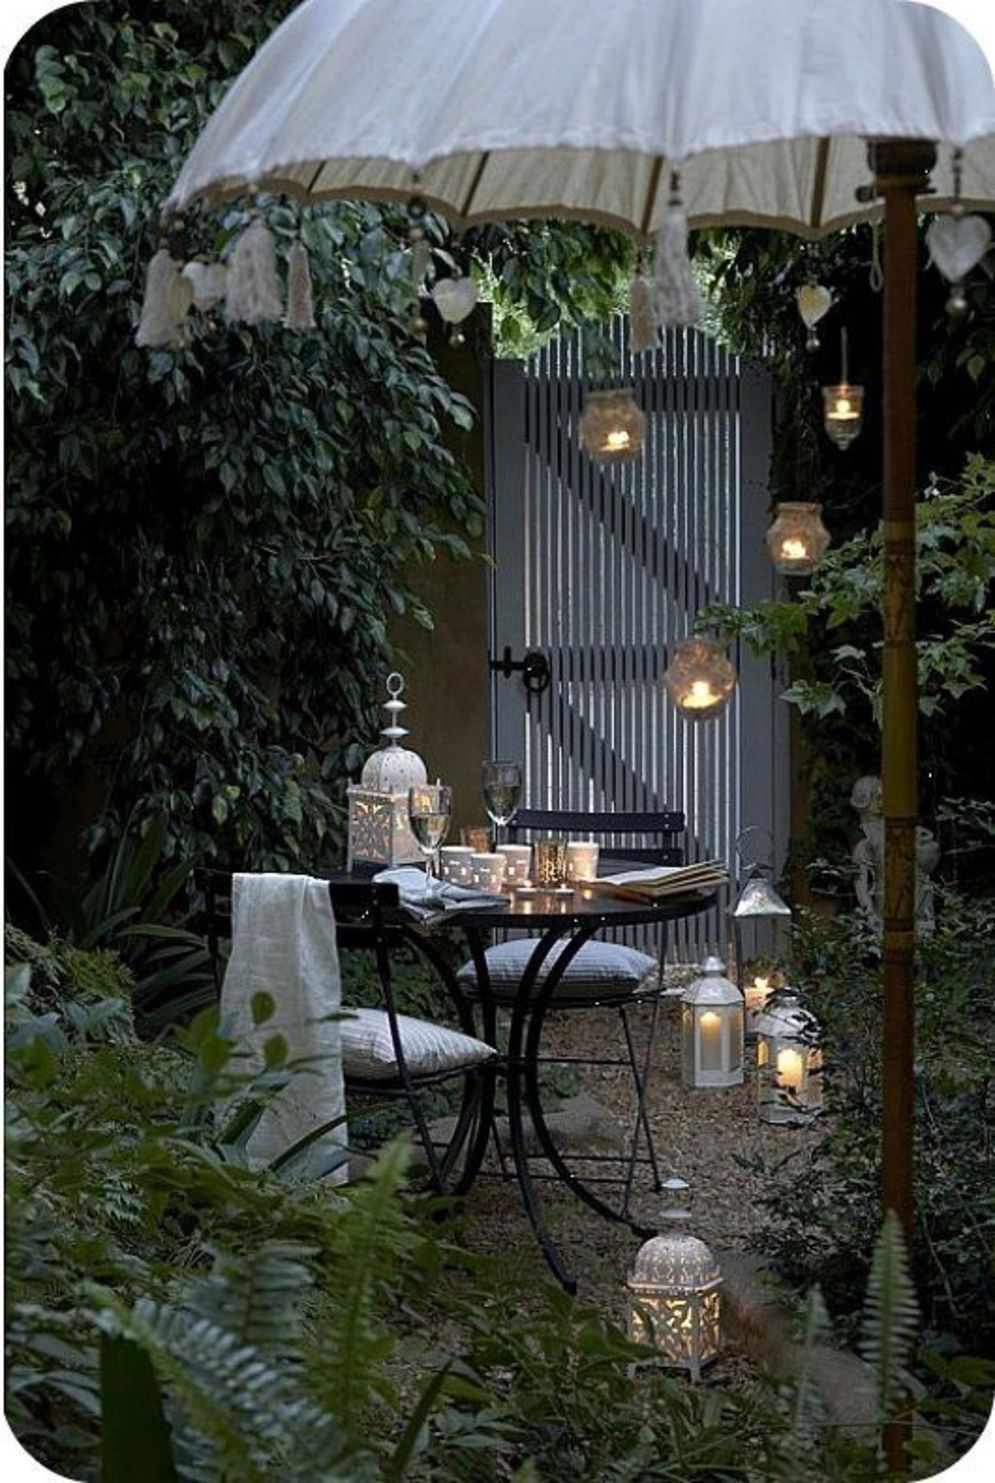 Beautiful garden lighting ideas with ground level ambient light giving luxurious resorts look Image 24